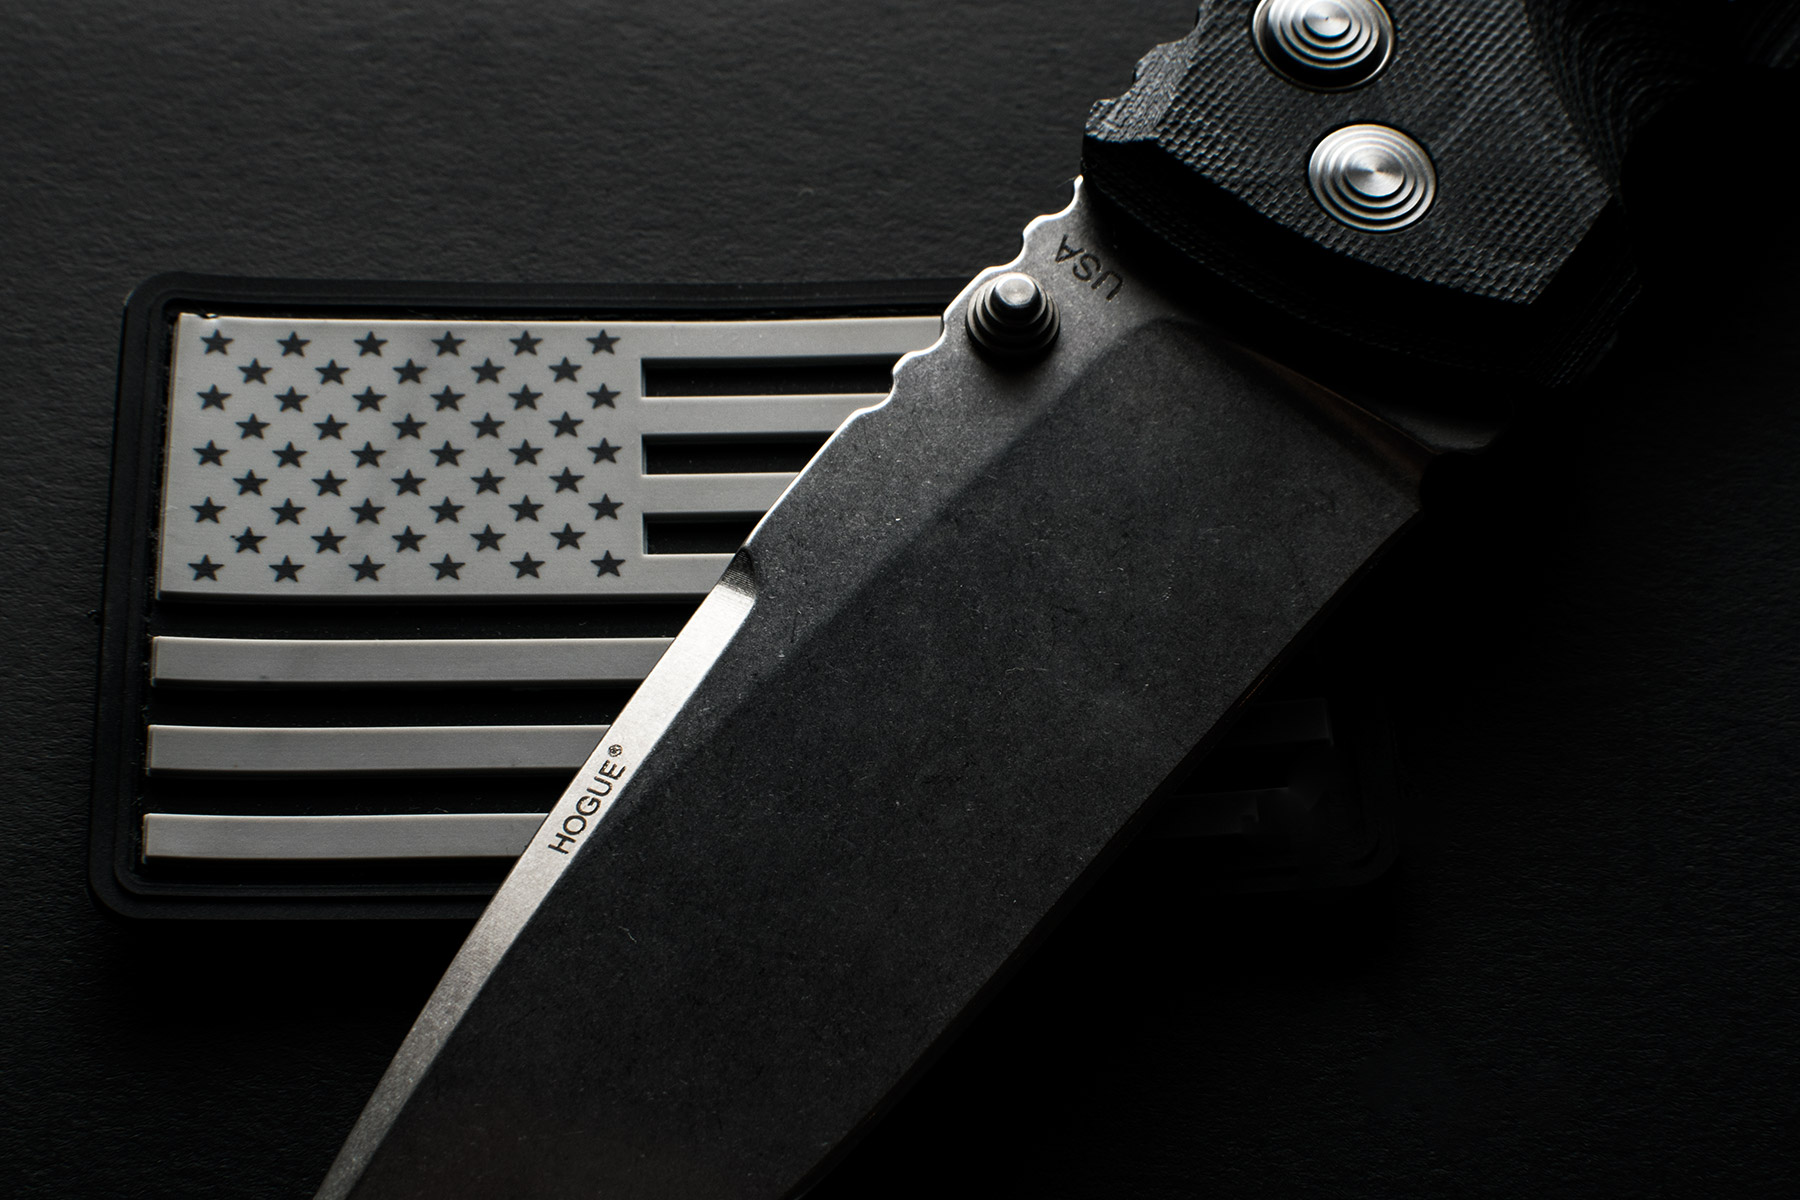 Hogue EX01 G10 Black Knife